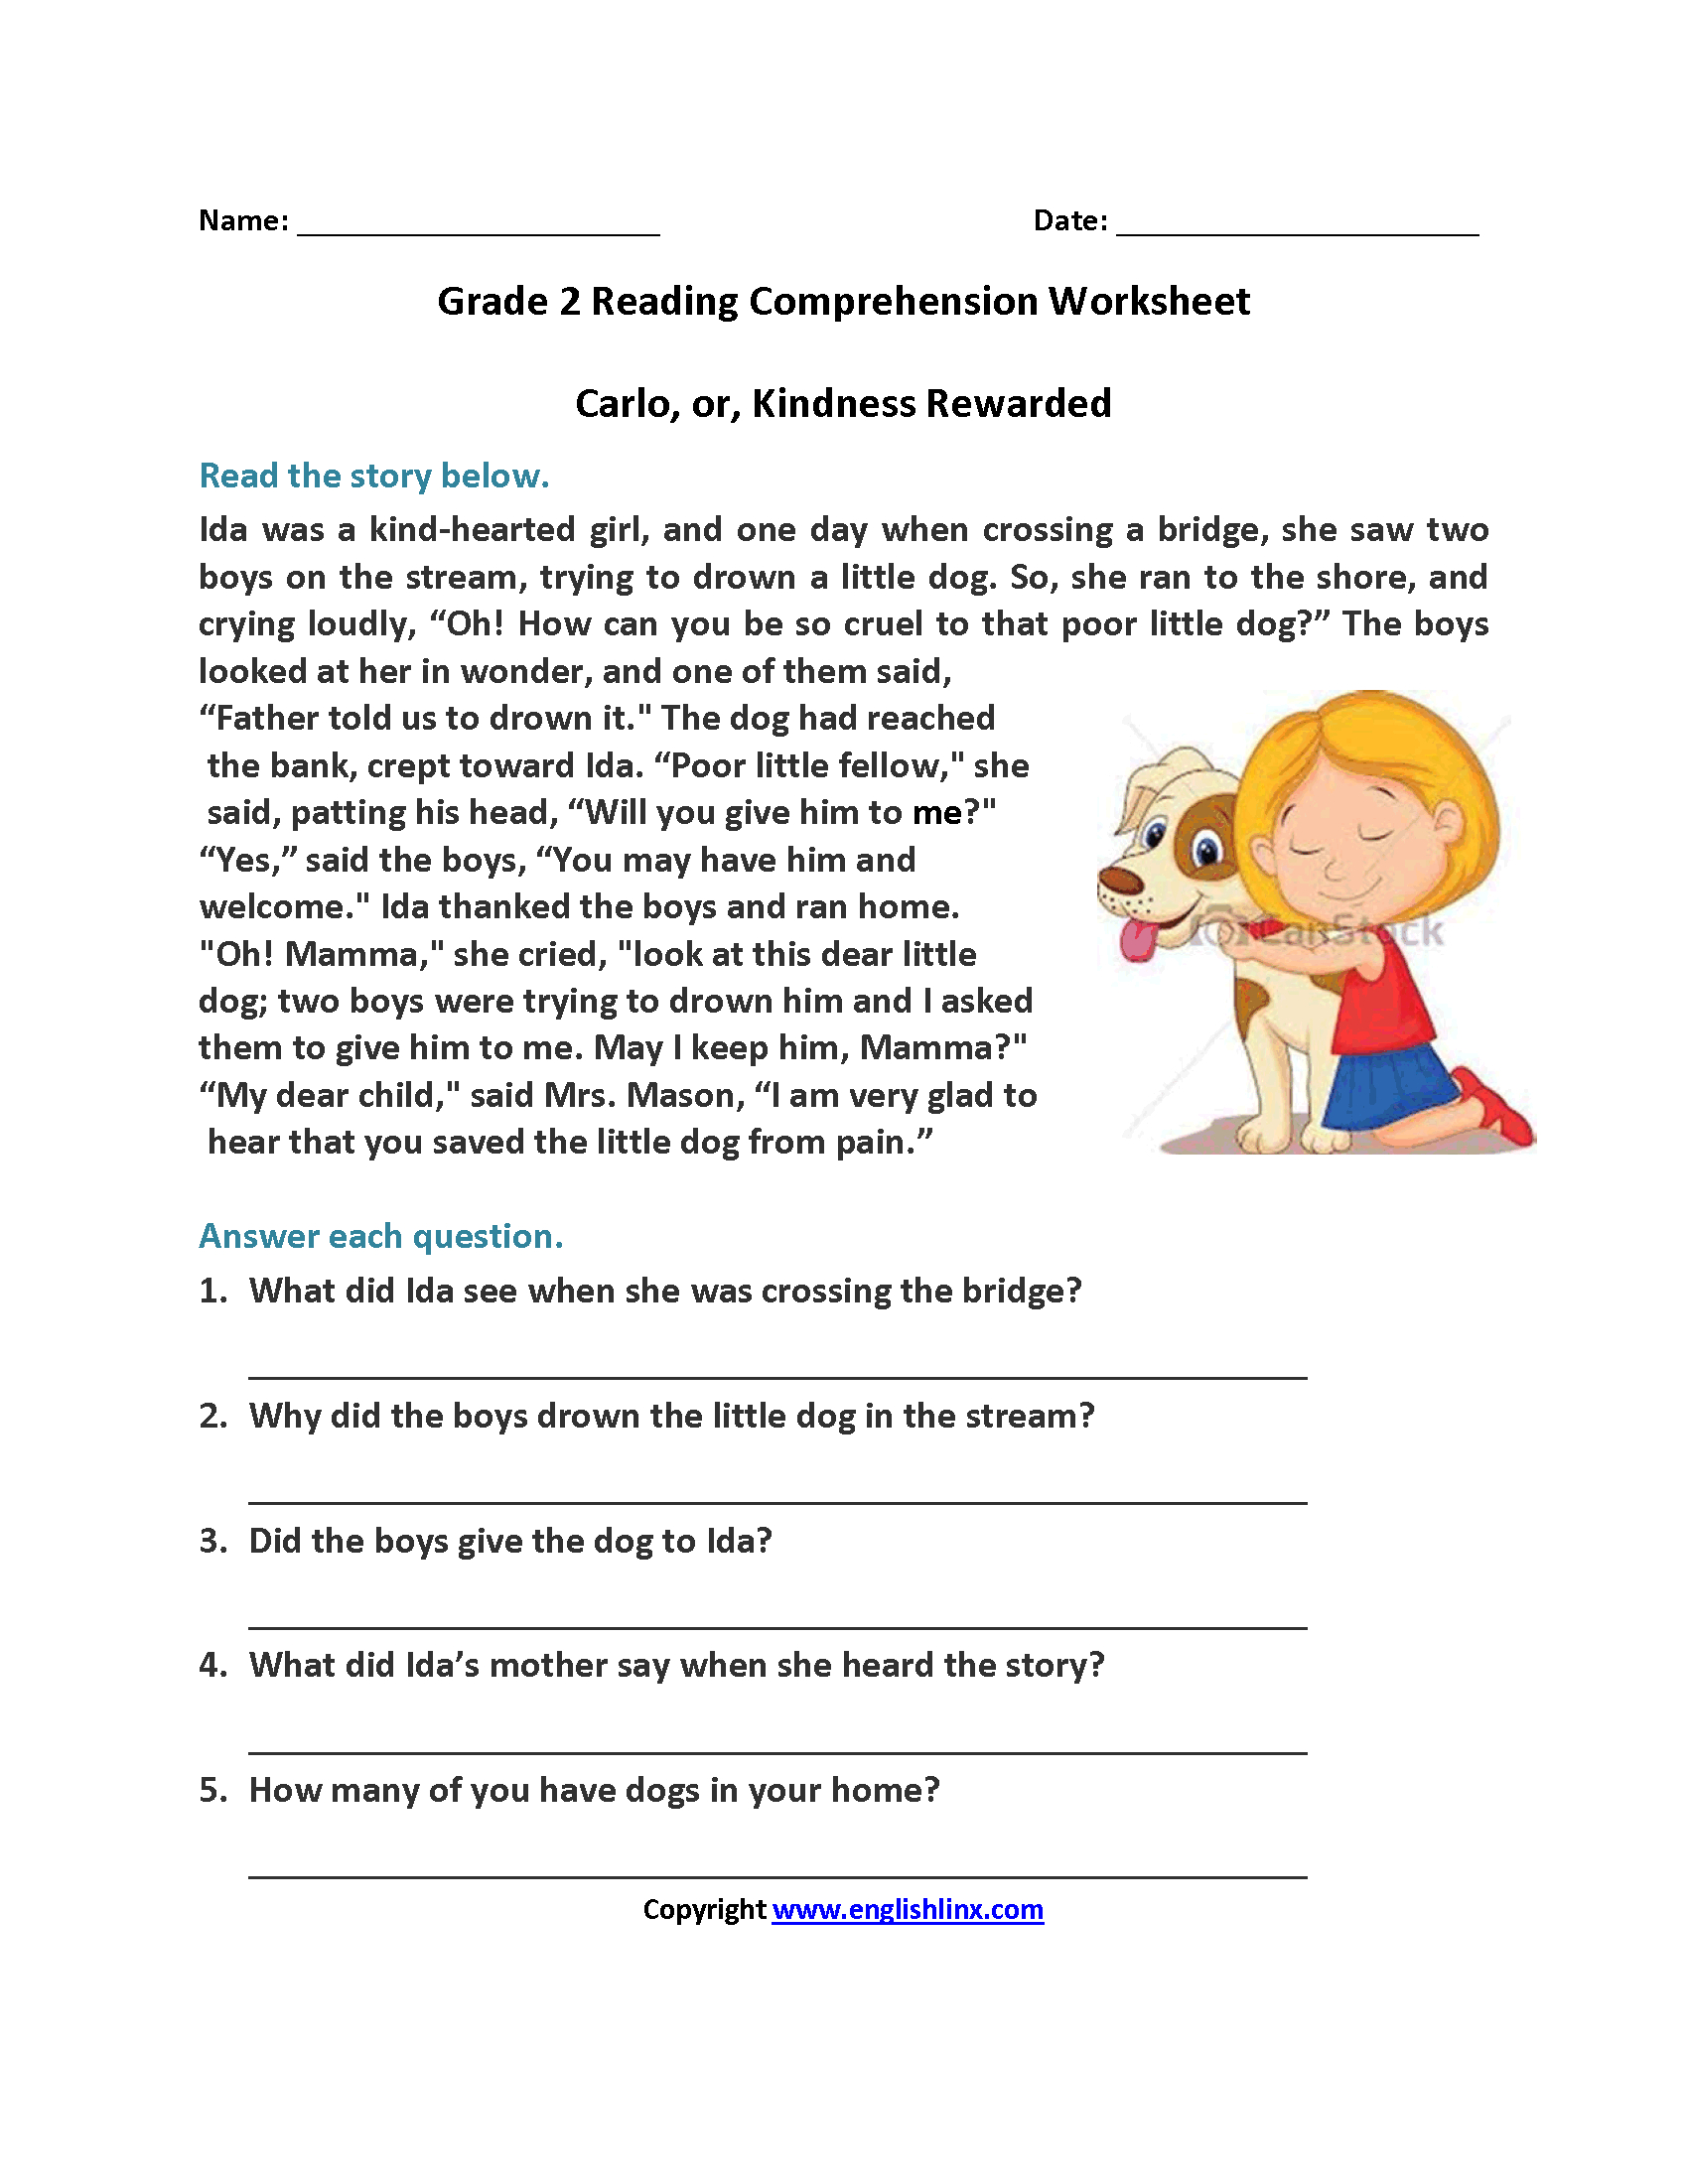 Carlo Or Kindness Rewarded Second Grade Reading Worksheets | Reading - Free Printable Worksheets Reading Comprehension 5Th Grade